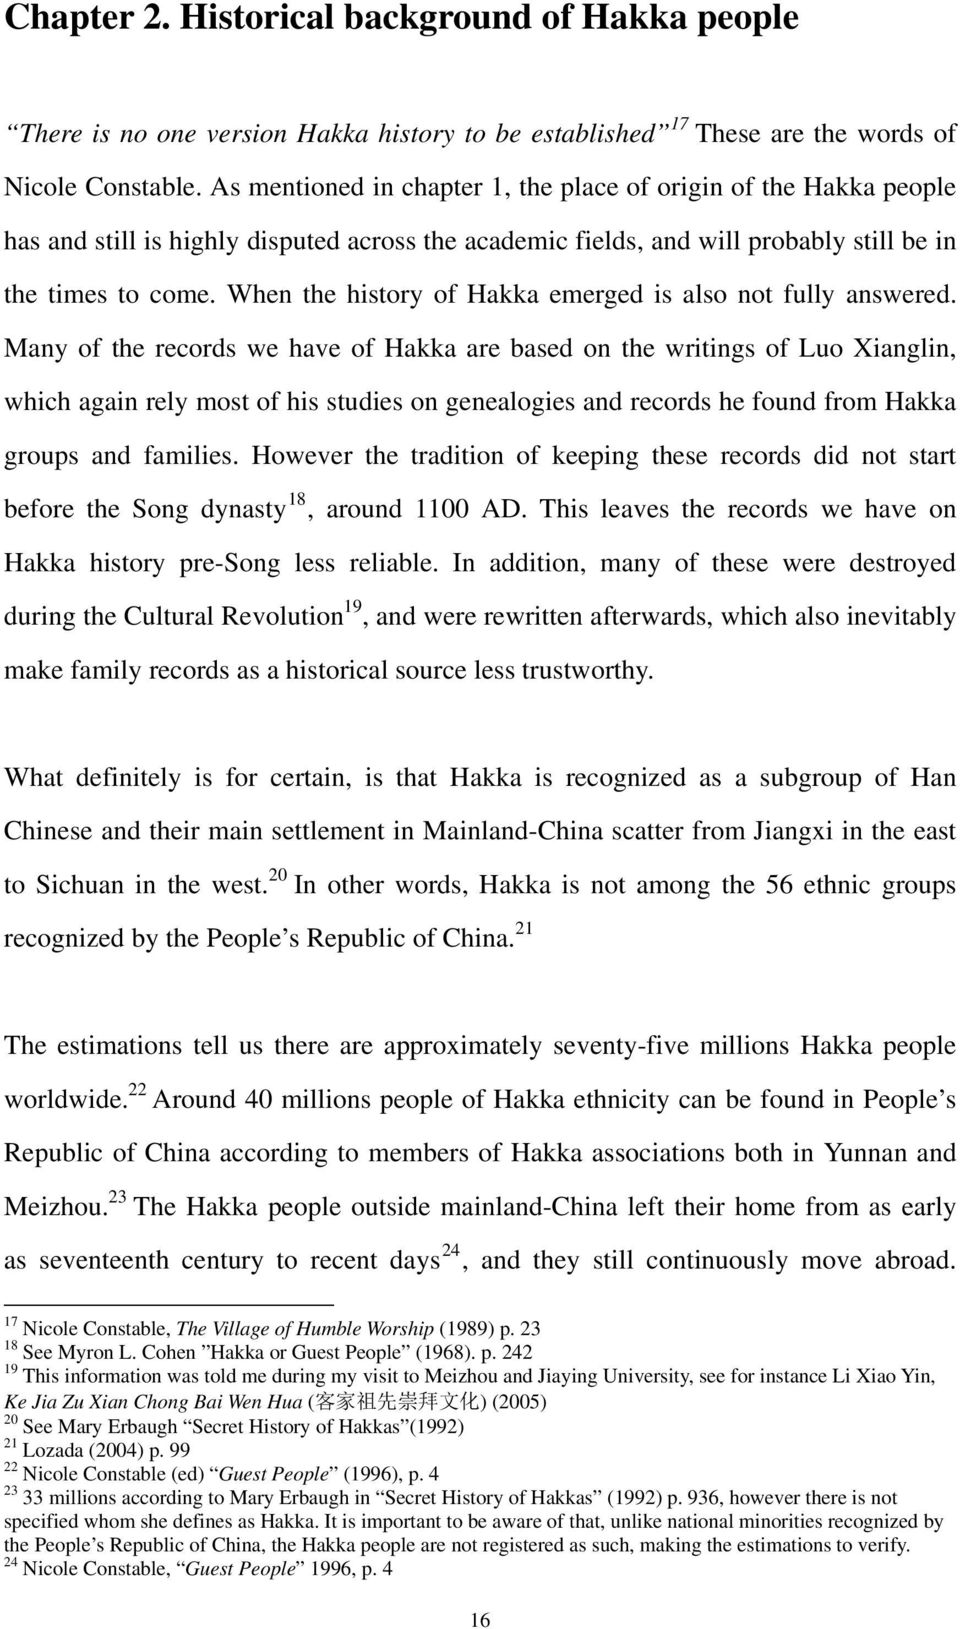 When the history of Hakka emerged is also not fully answered.